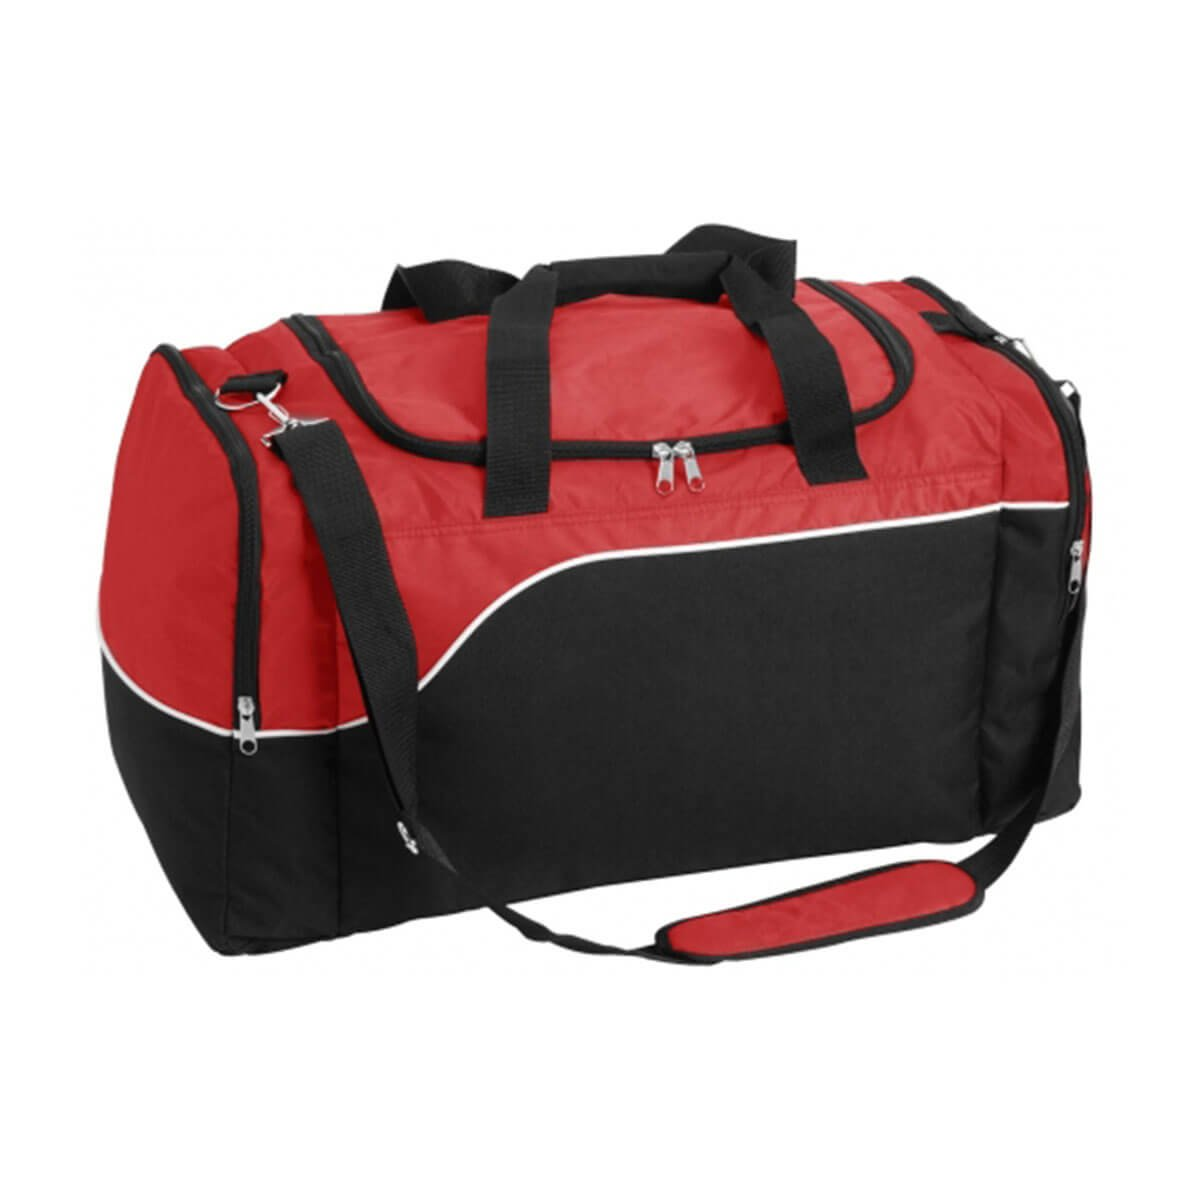 Align Sports Bag-Red / White / Black